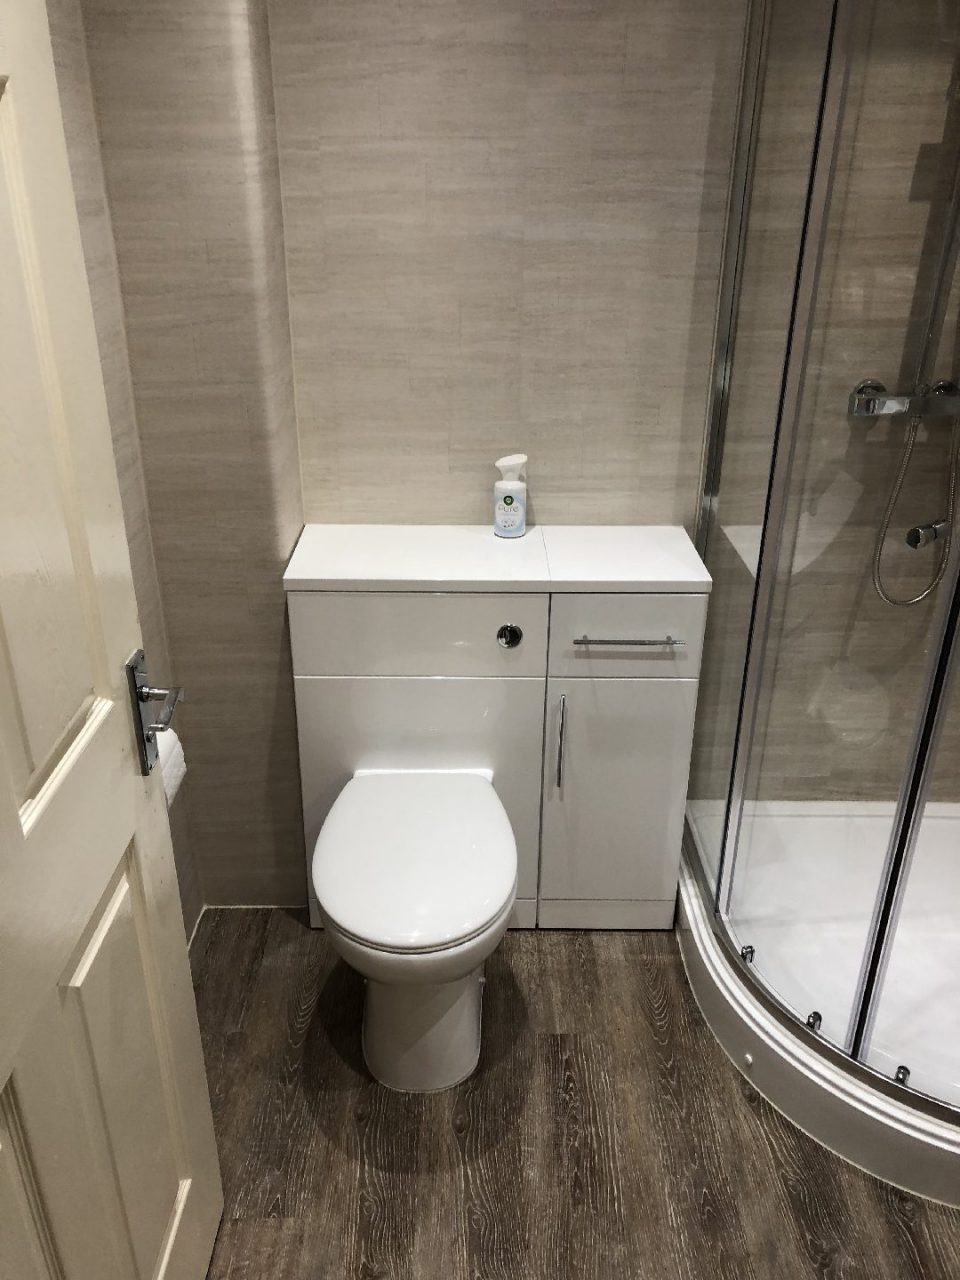 Full Bathroom renovated - bath replaced by easy access shower enclosure - B